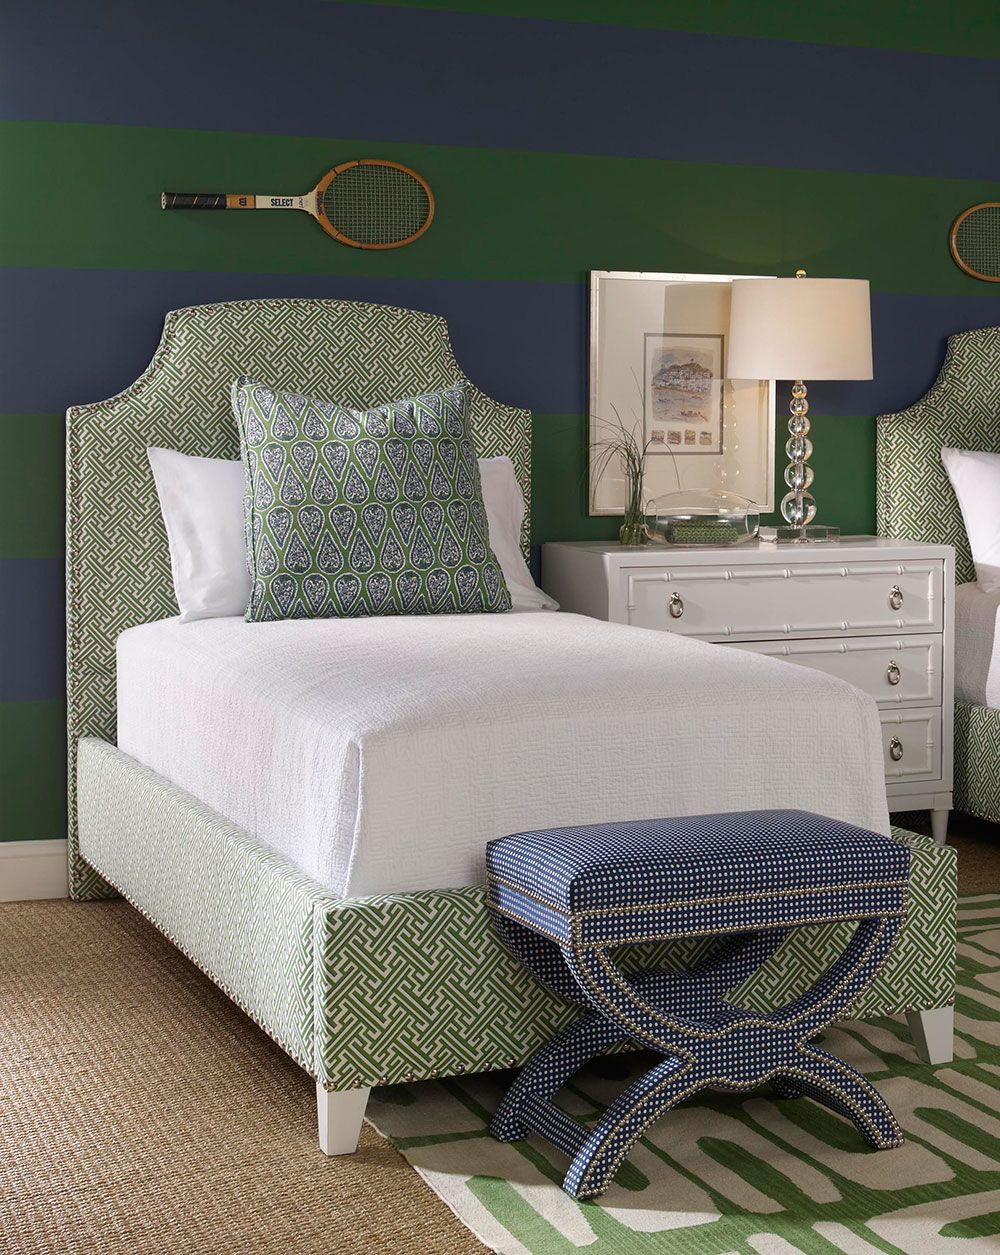 Bedroom interior roof the bonnie and bruno twin upholstered beds available from the tin